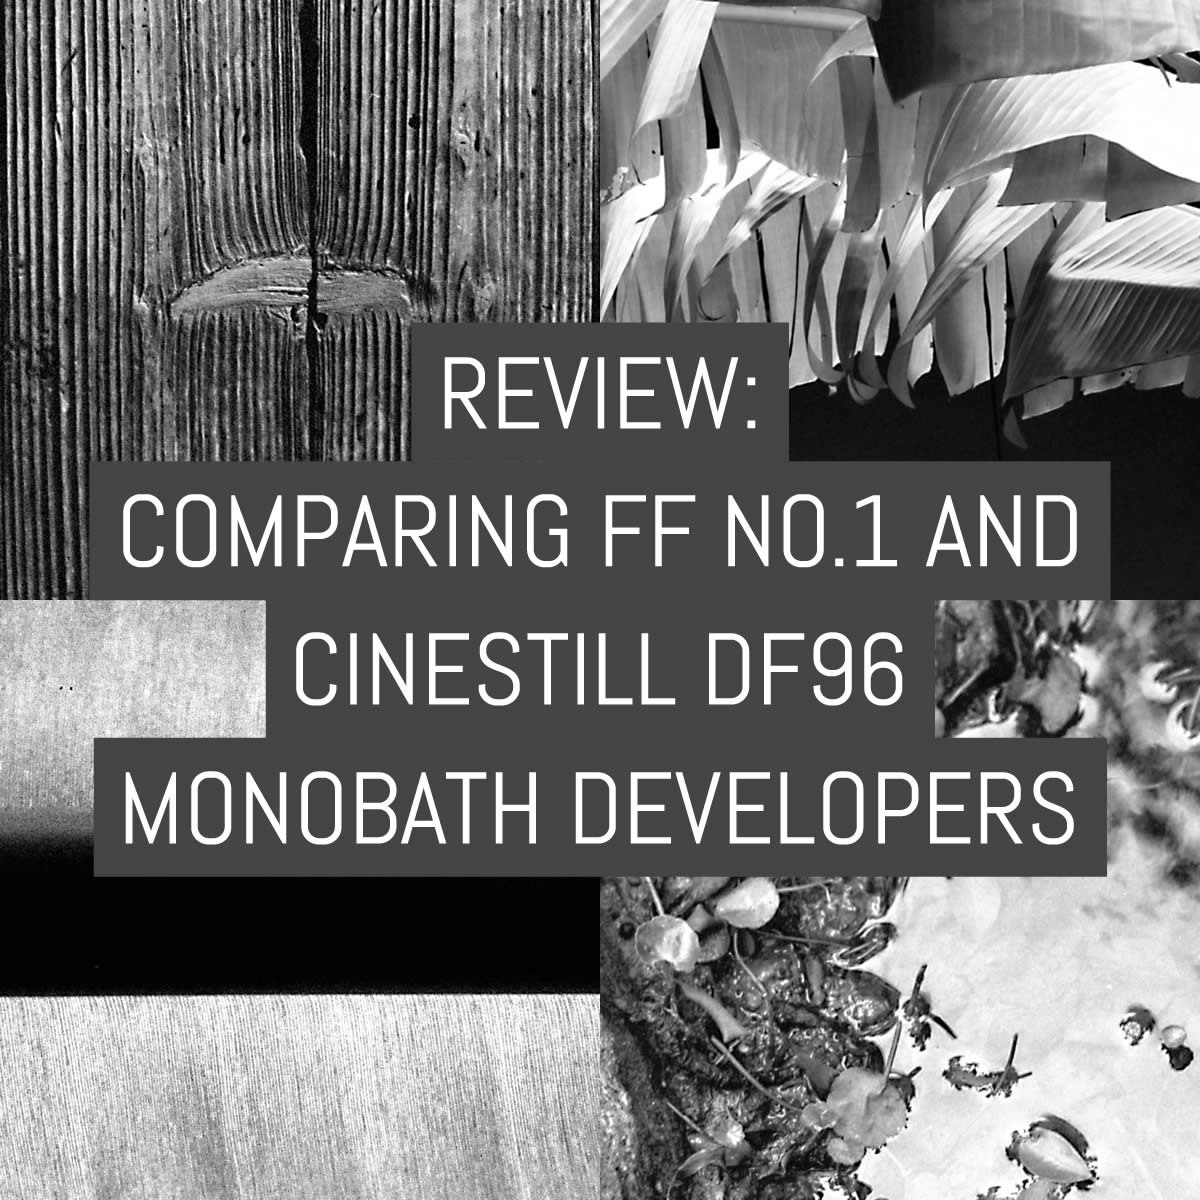 Review comparing ff no 1 and cinestill df96 monobath developers